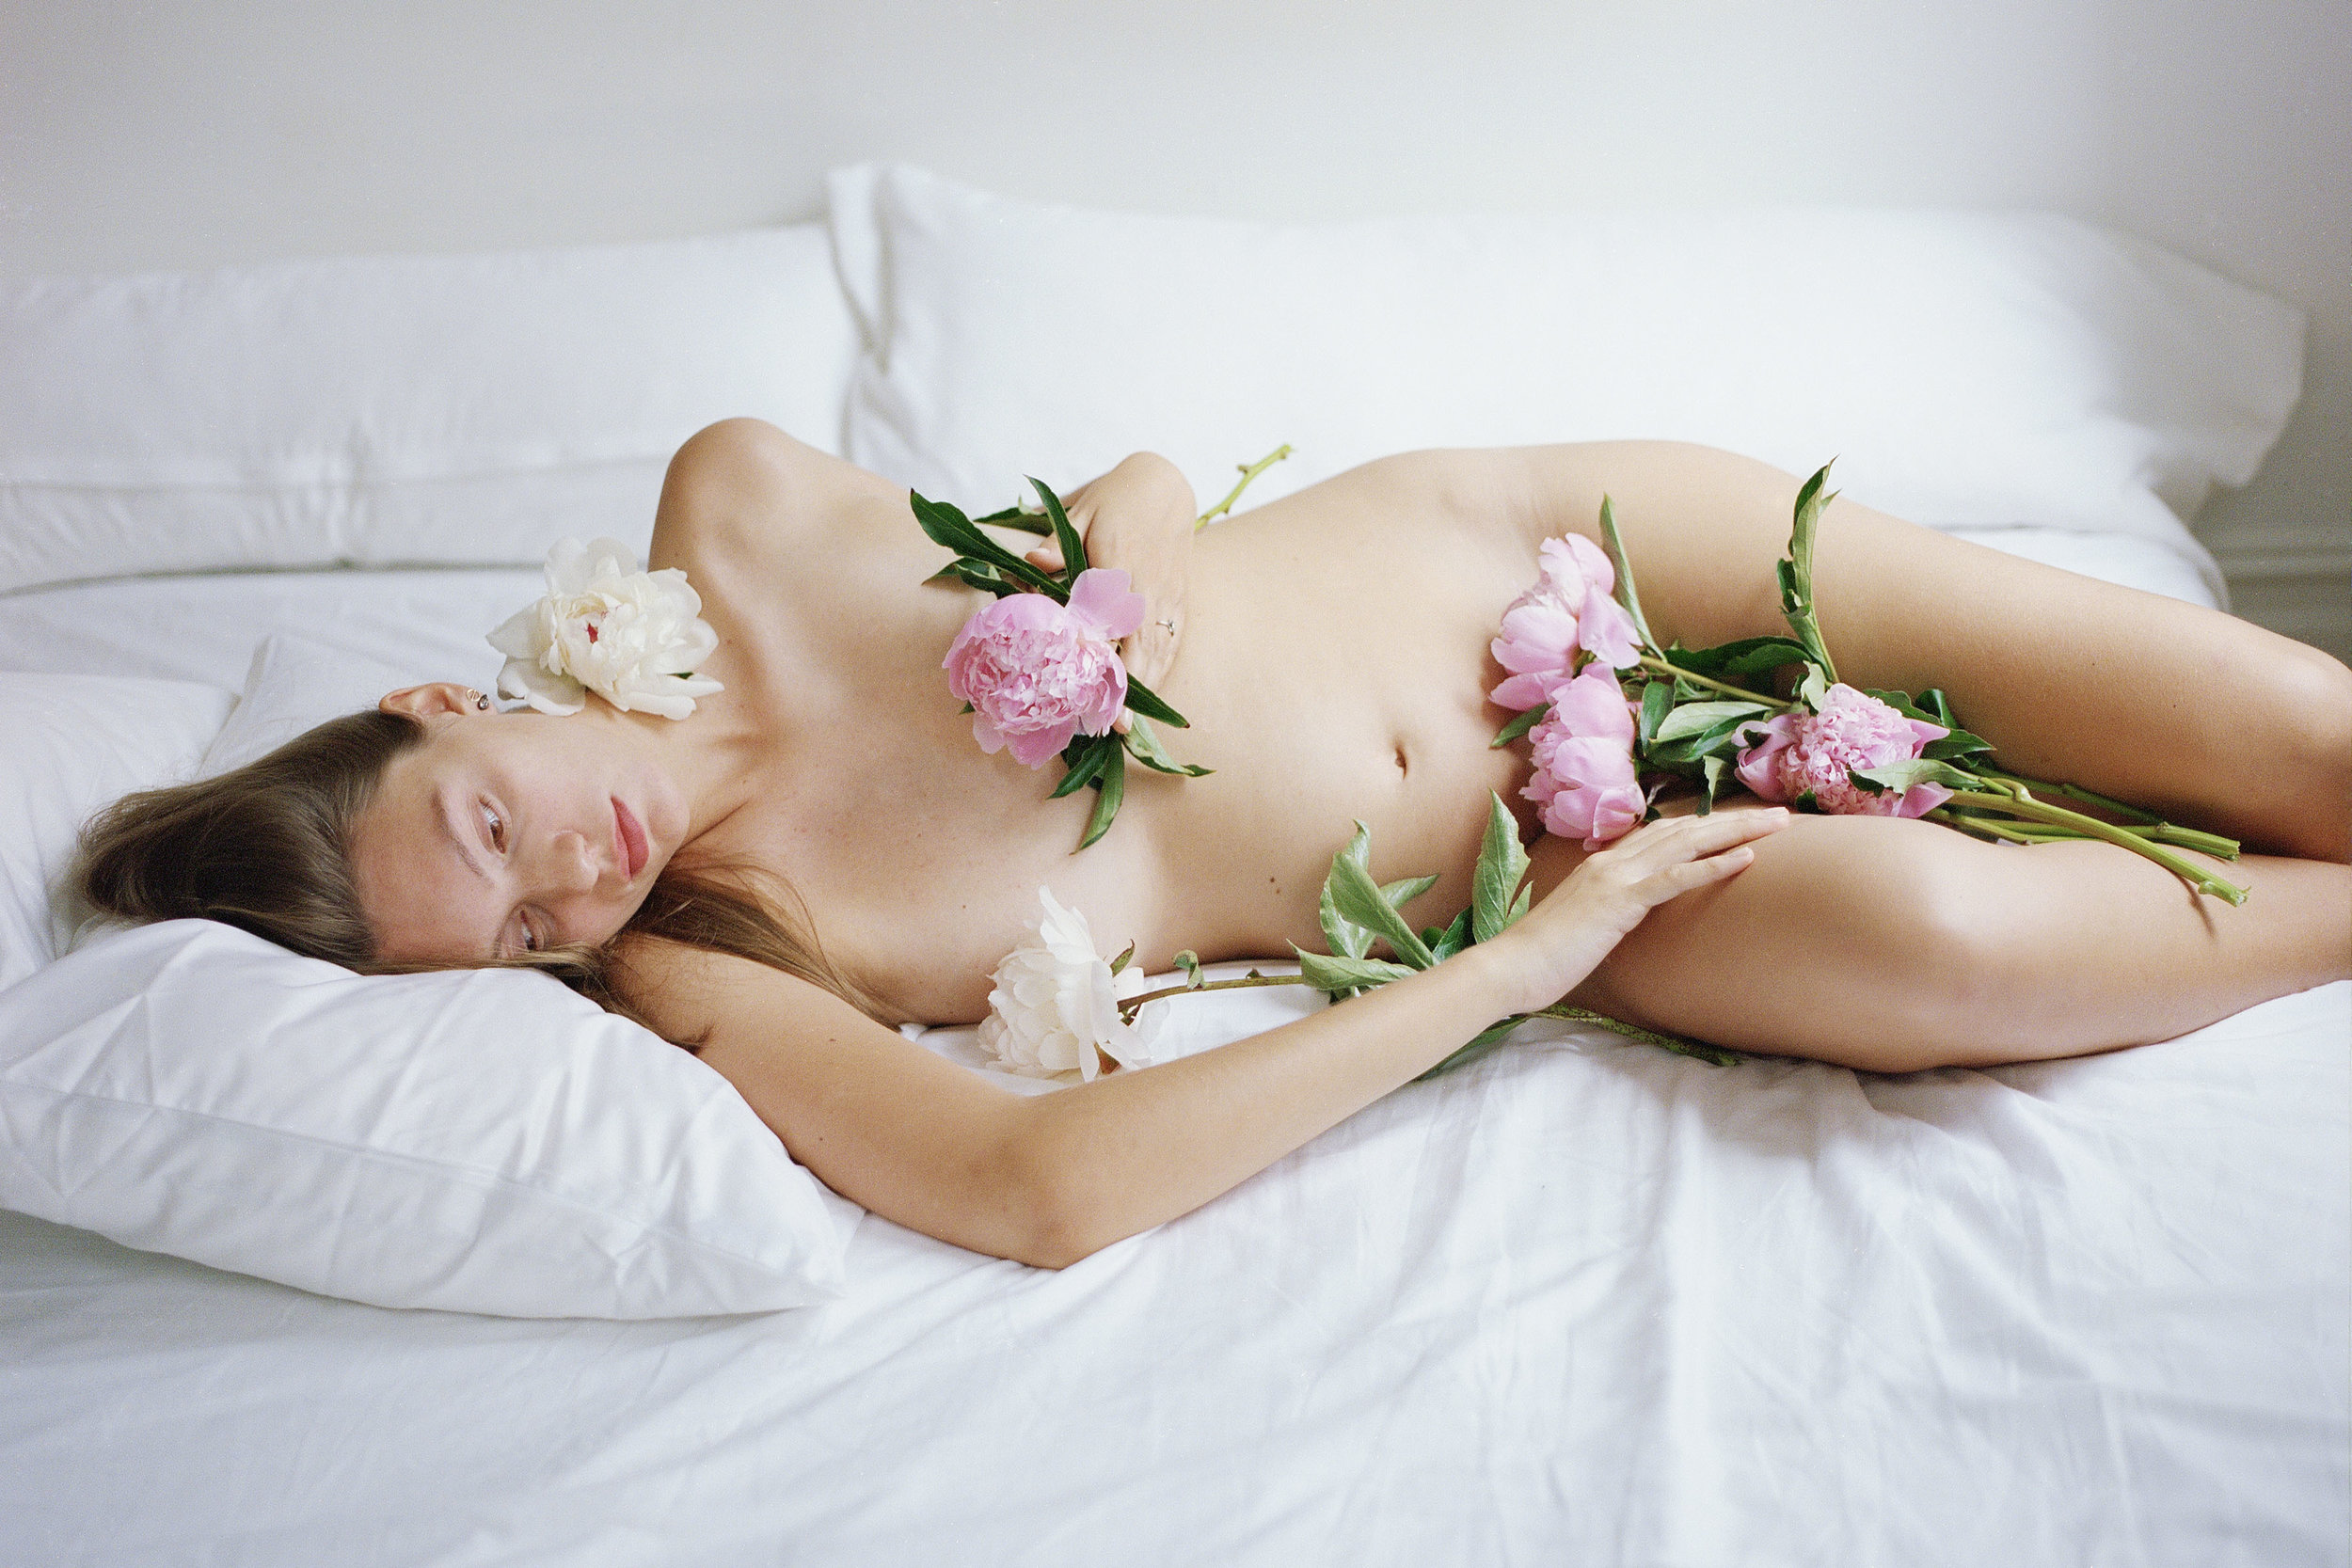 Women & Flowers - exhibition displayed in NYC & Miami